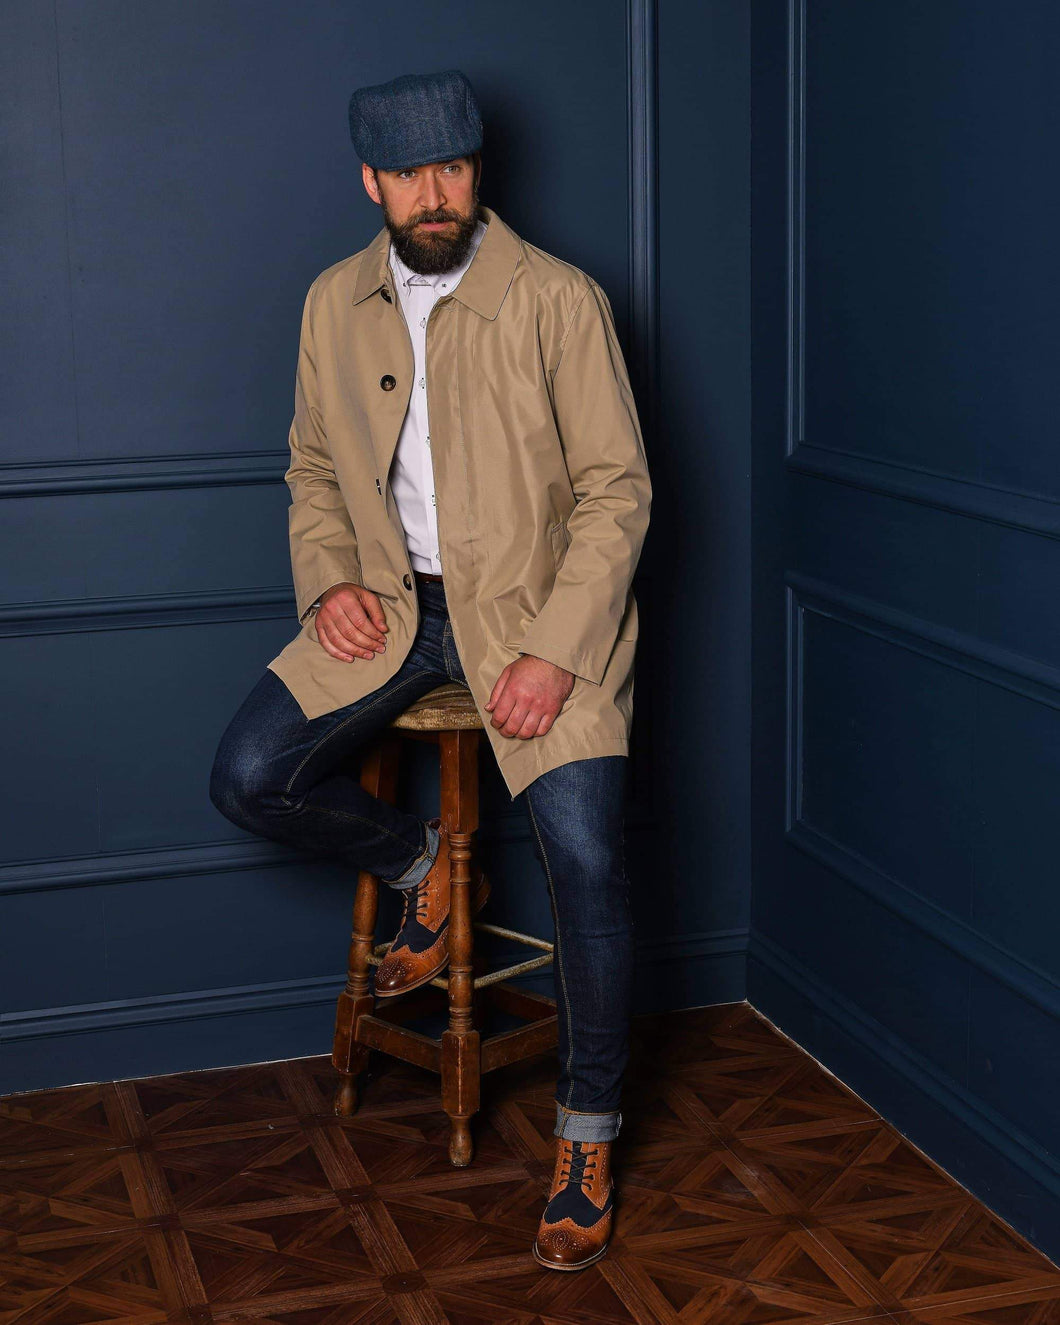 Beige Mac Casual Outfit harry-brown-stone-mac / marc-darcy-white-pin-collar-shirt-with-collar-bar / london-brogues-gatsby-tan-navy-leather-hi-brogue-boot